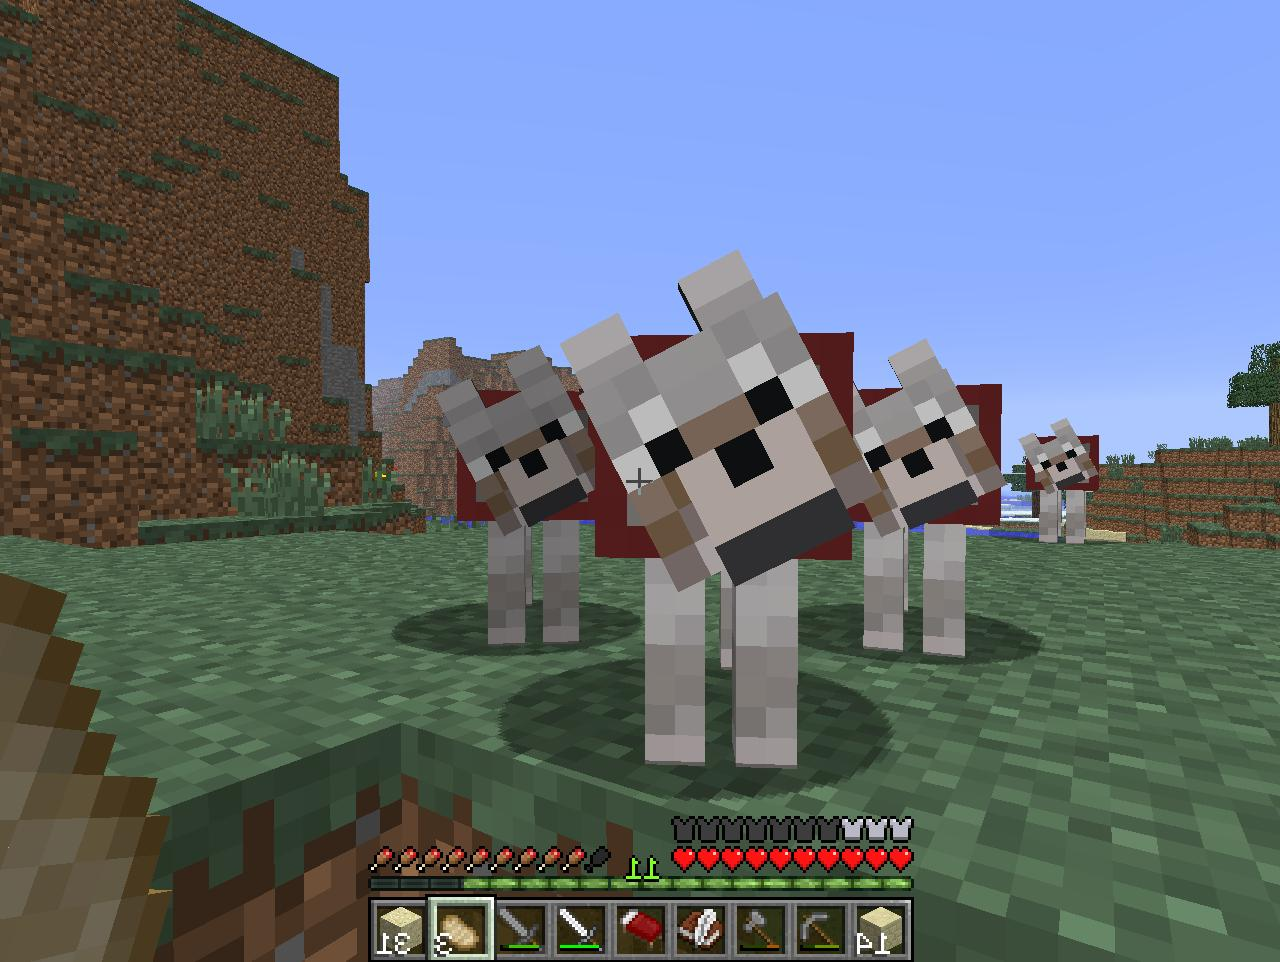 Pets Ideas In Minecraft For Android Apk Download